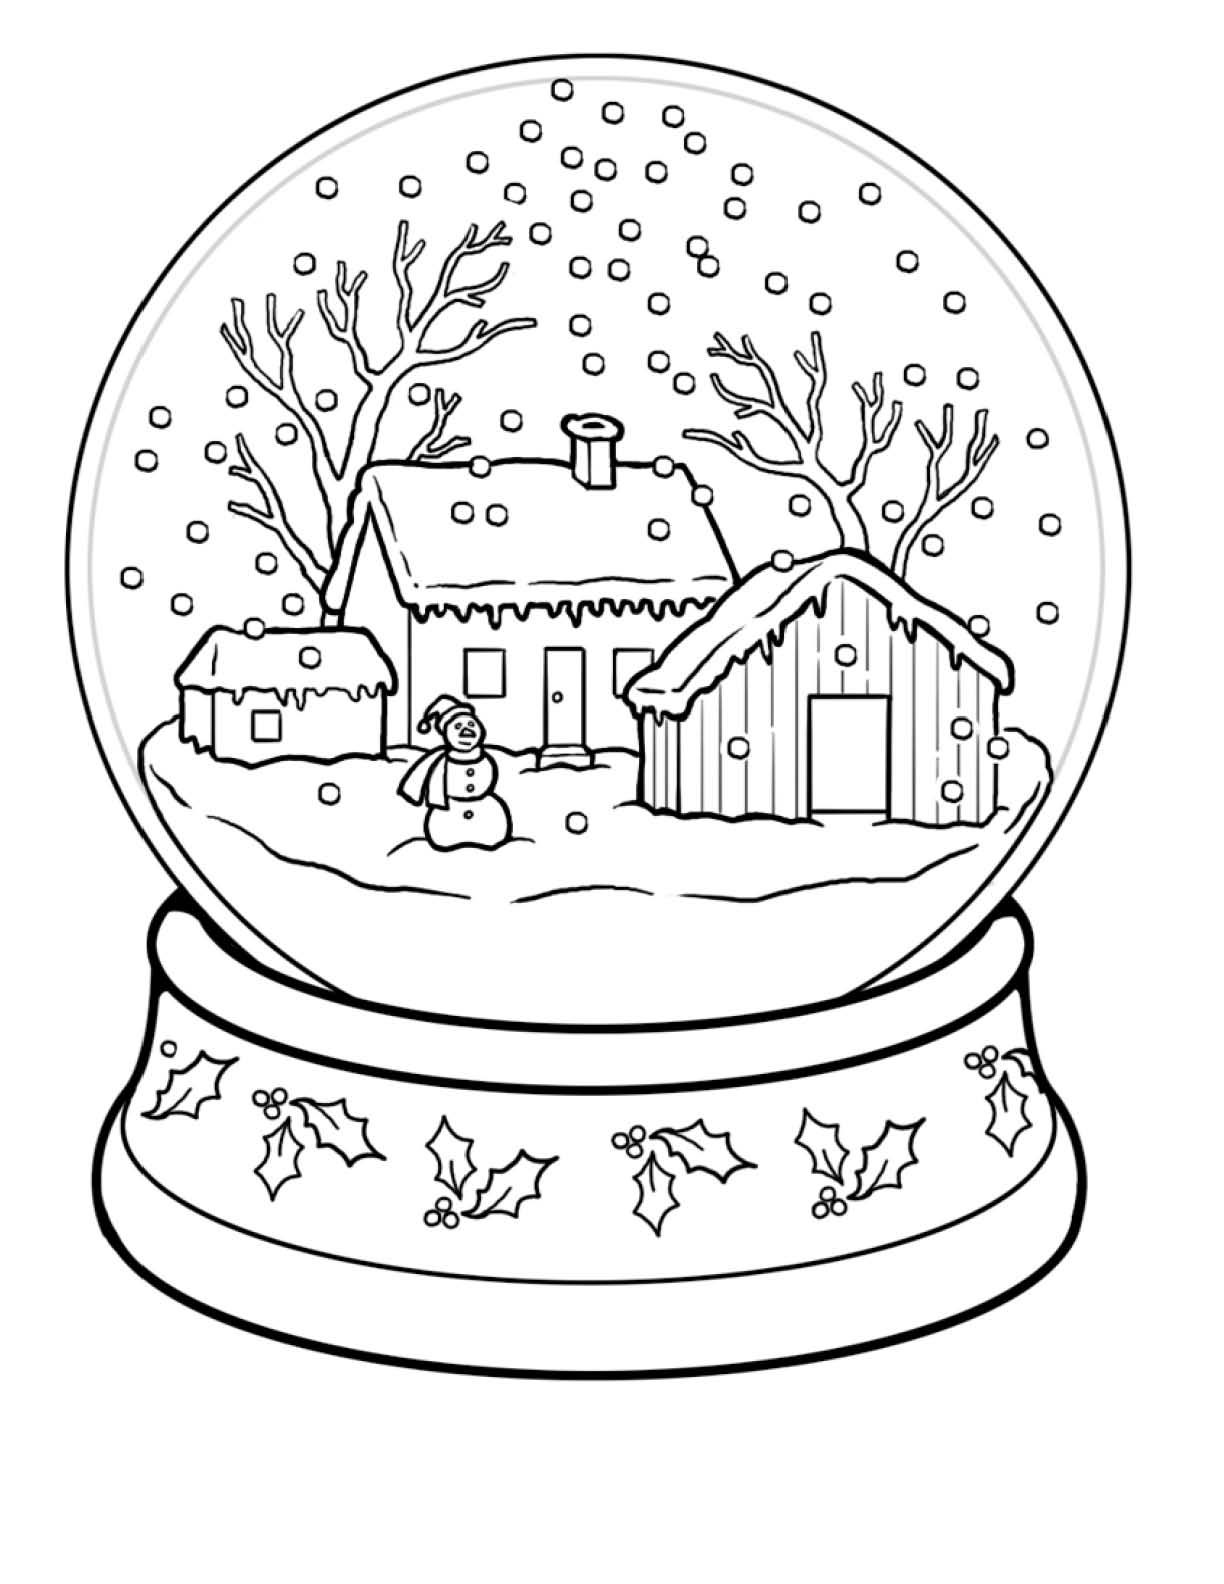 Winter Coloring Pages To Download And Print For Free